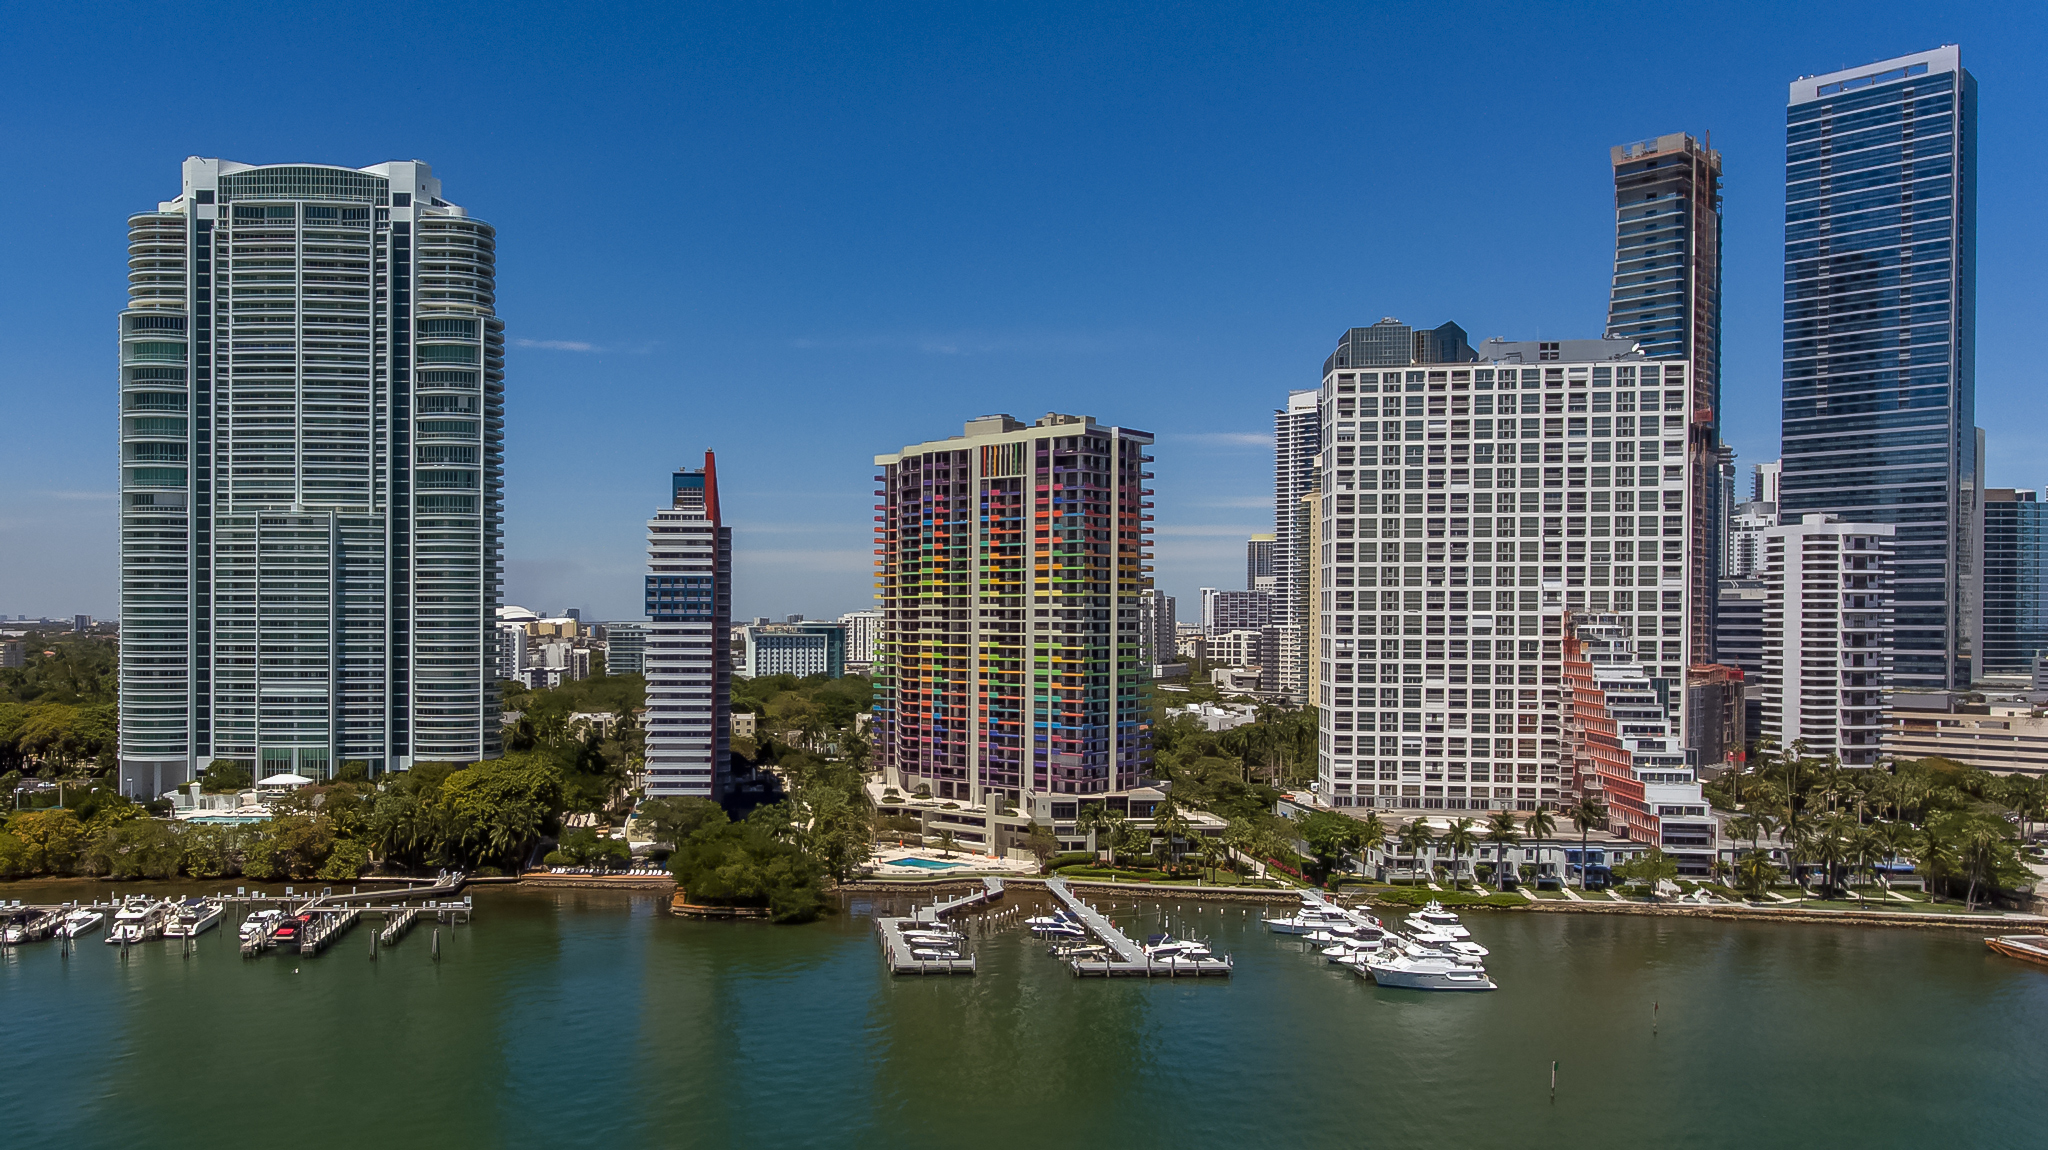 Drone Photography in Miami